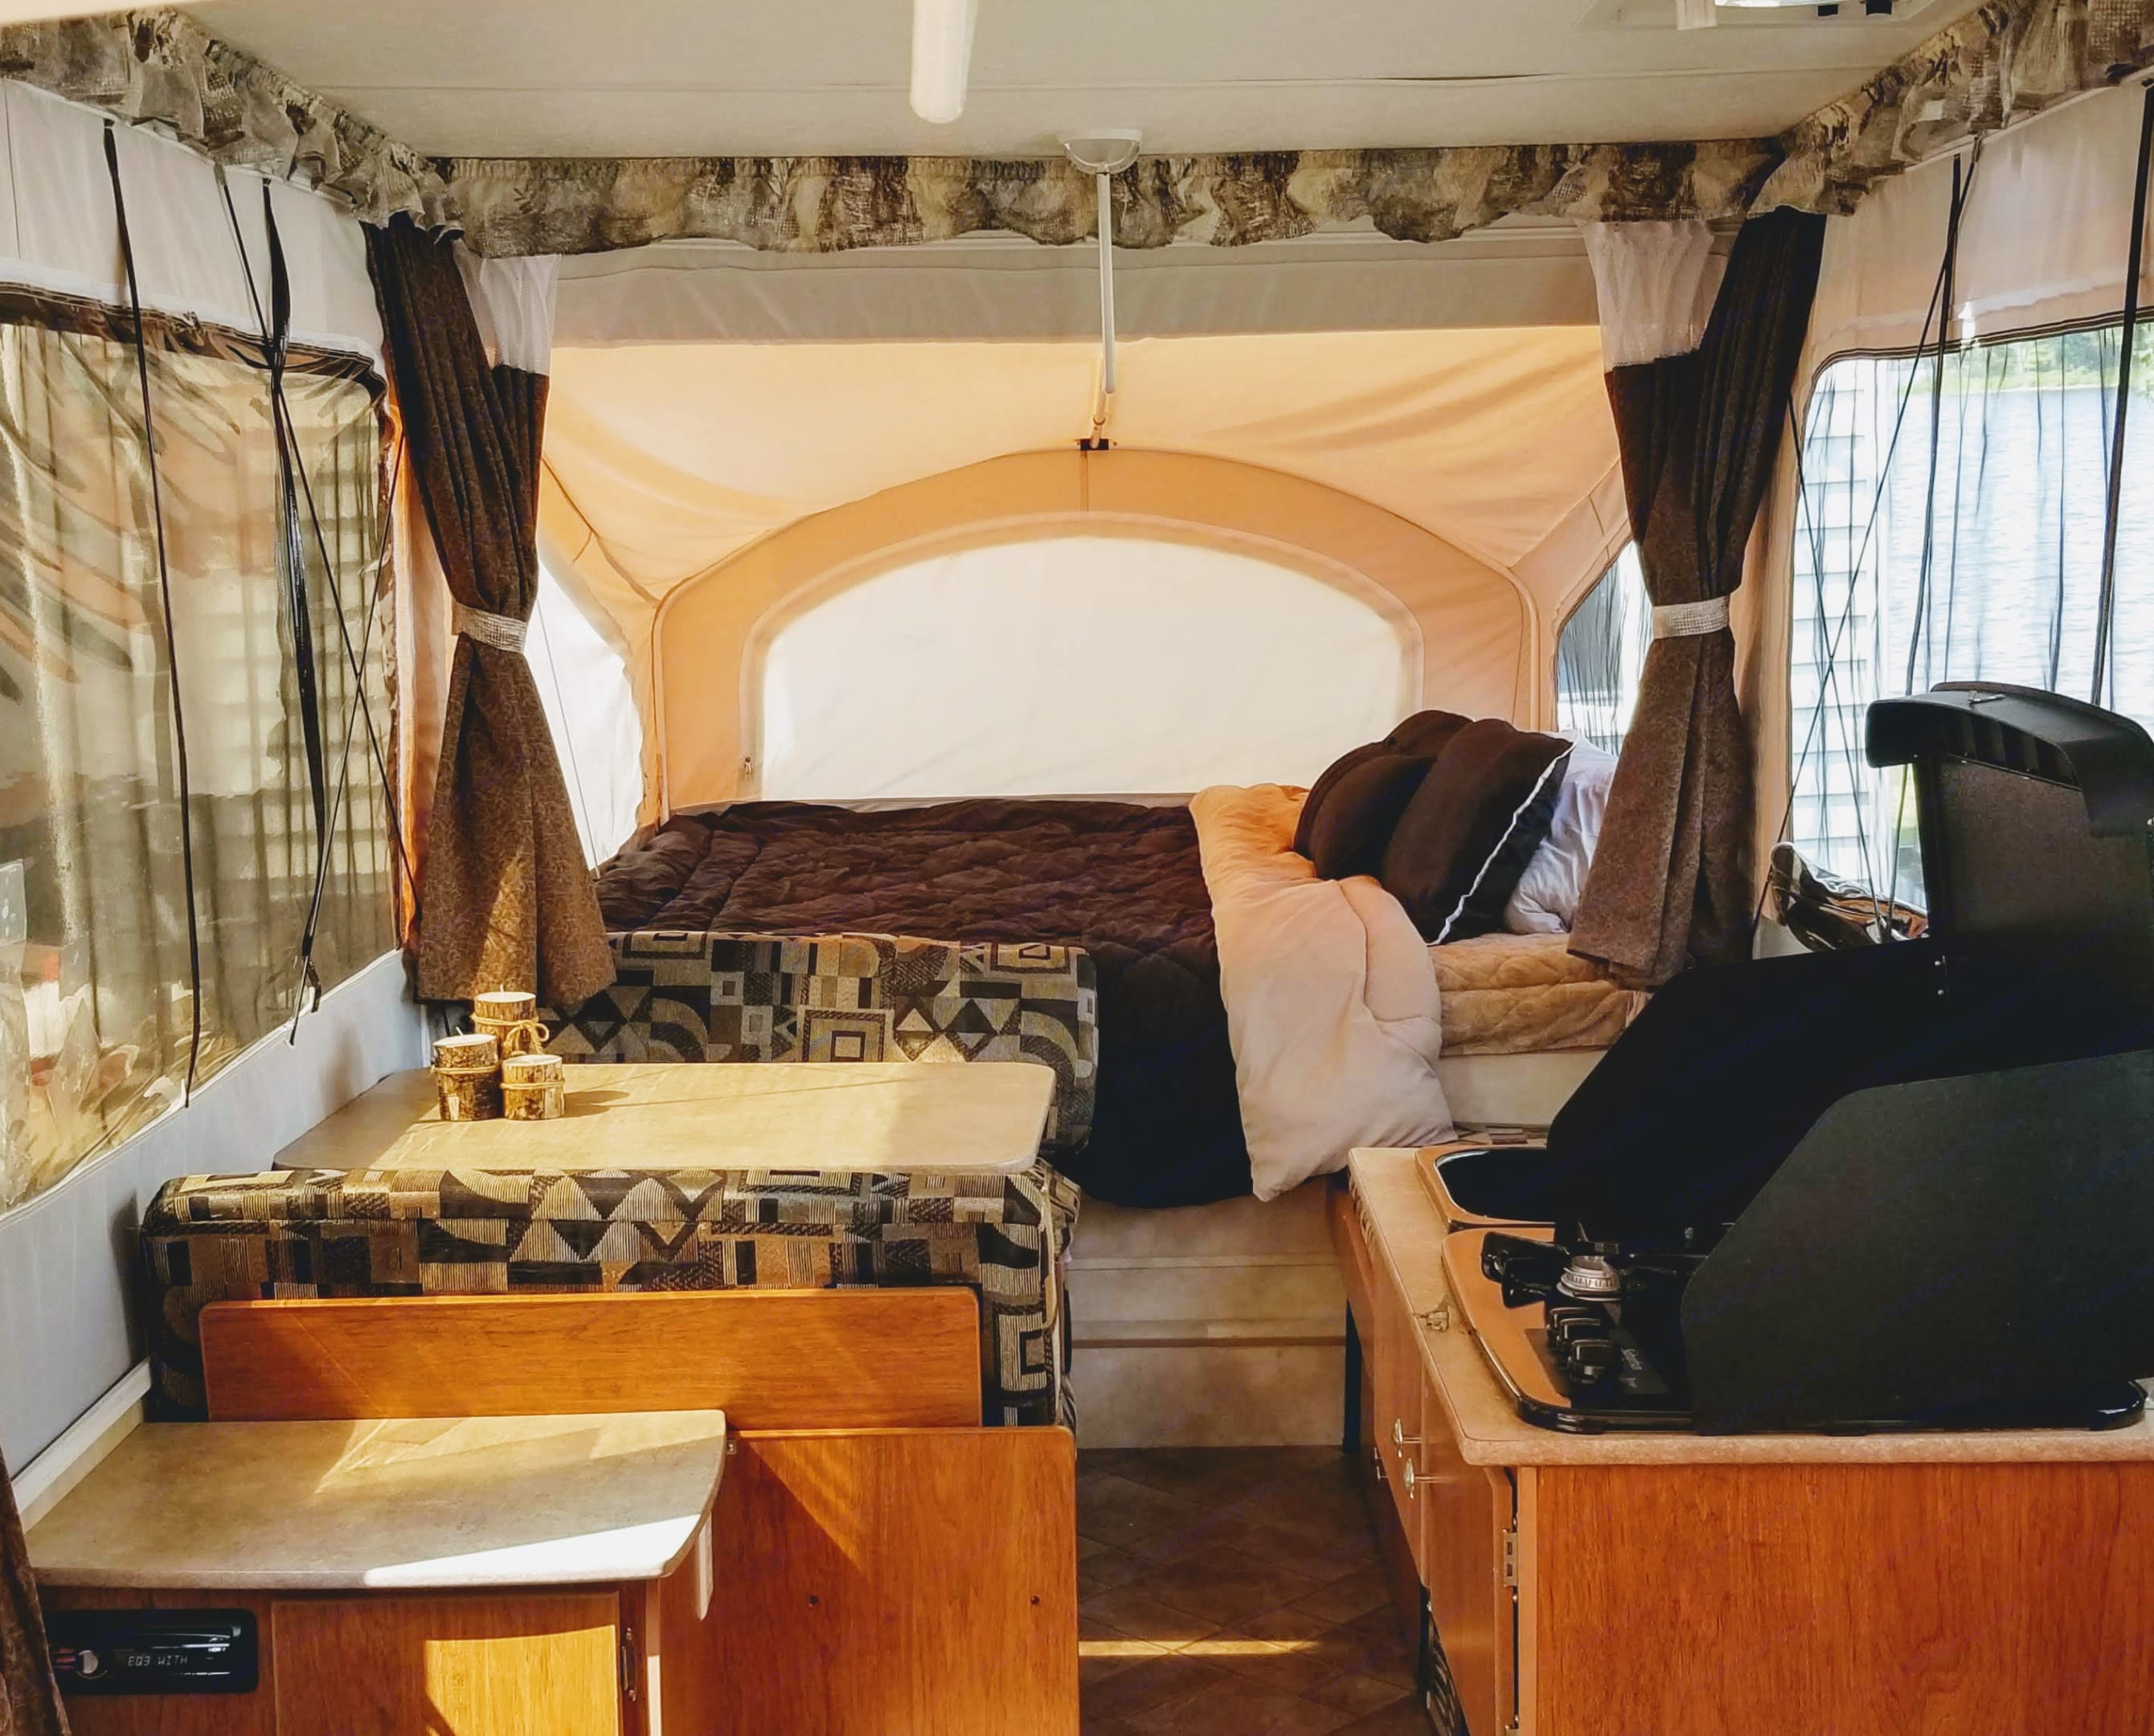 Dinette that collapses into a bed, King Size Bed at the end, Stove and Sink on the Right side.. Coachmen Clipper 2011